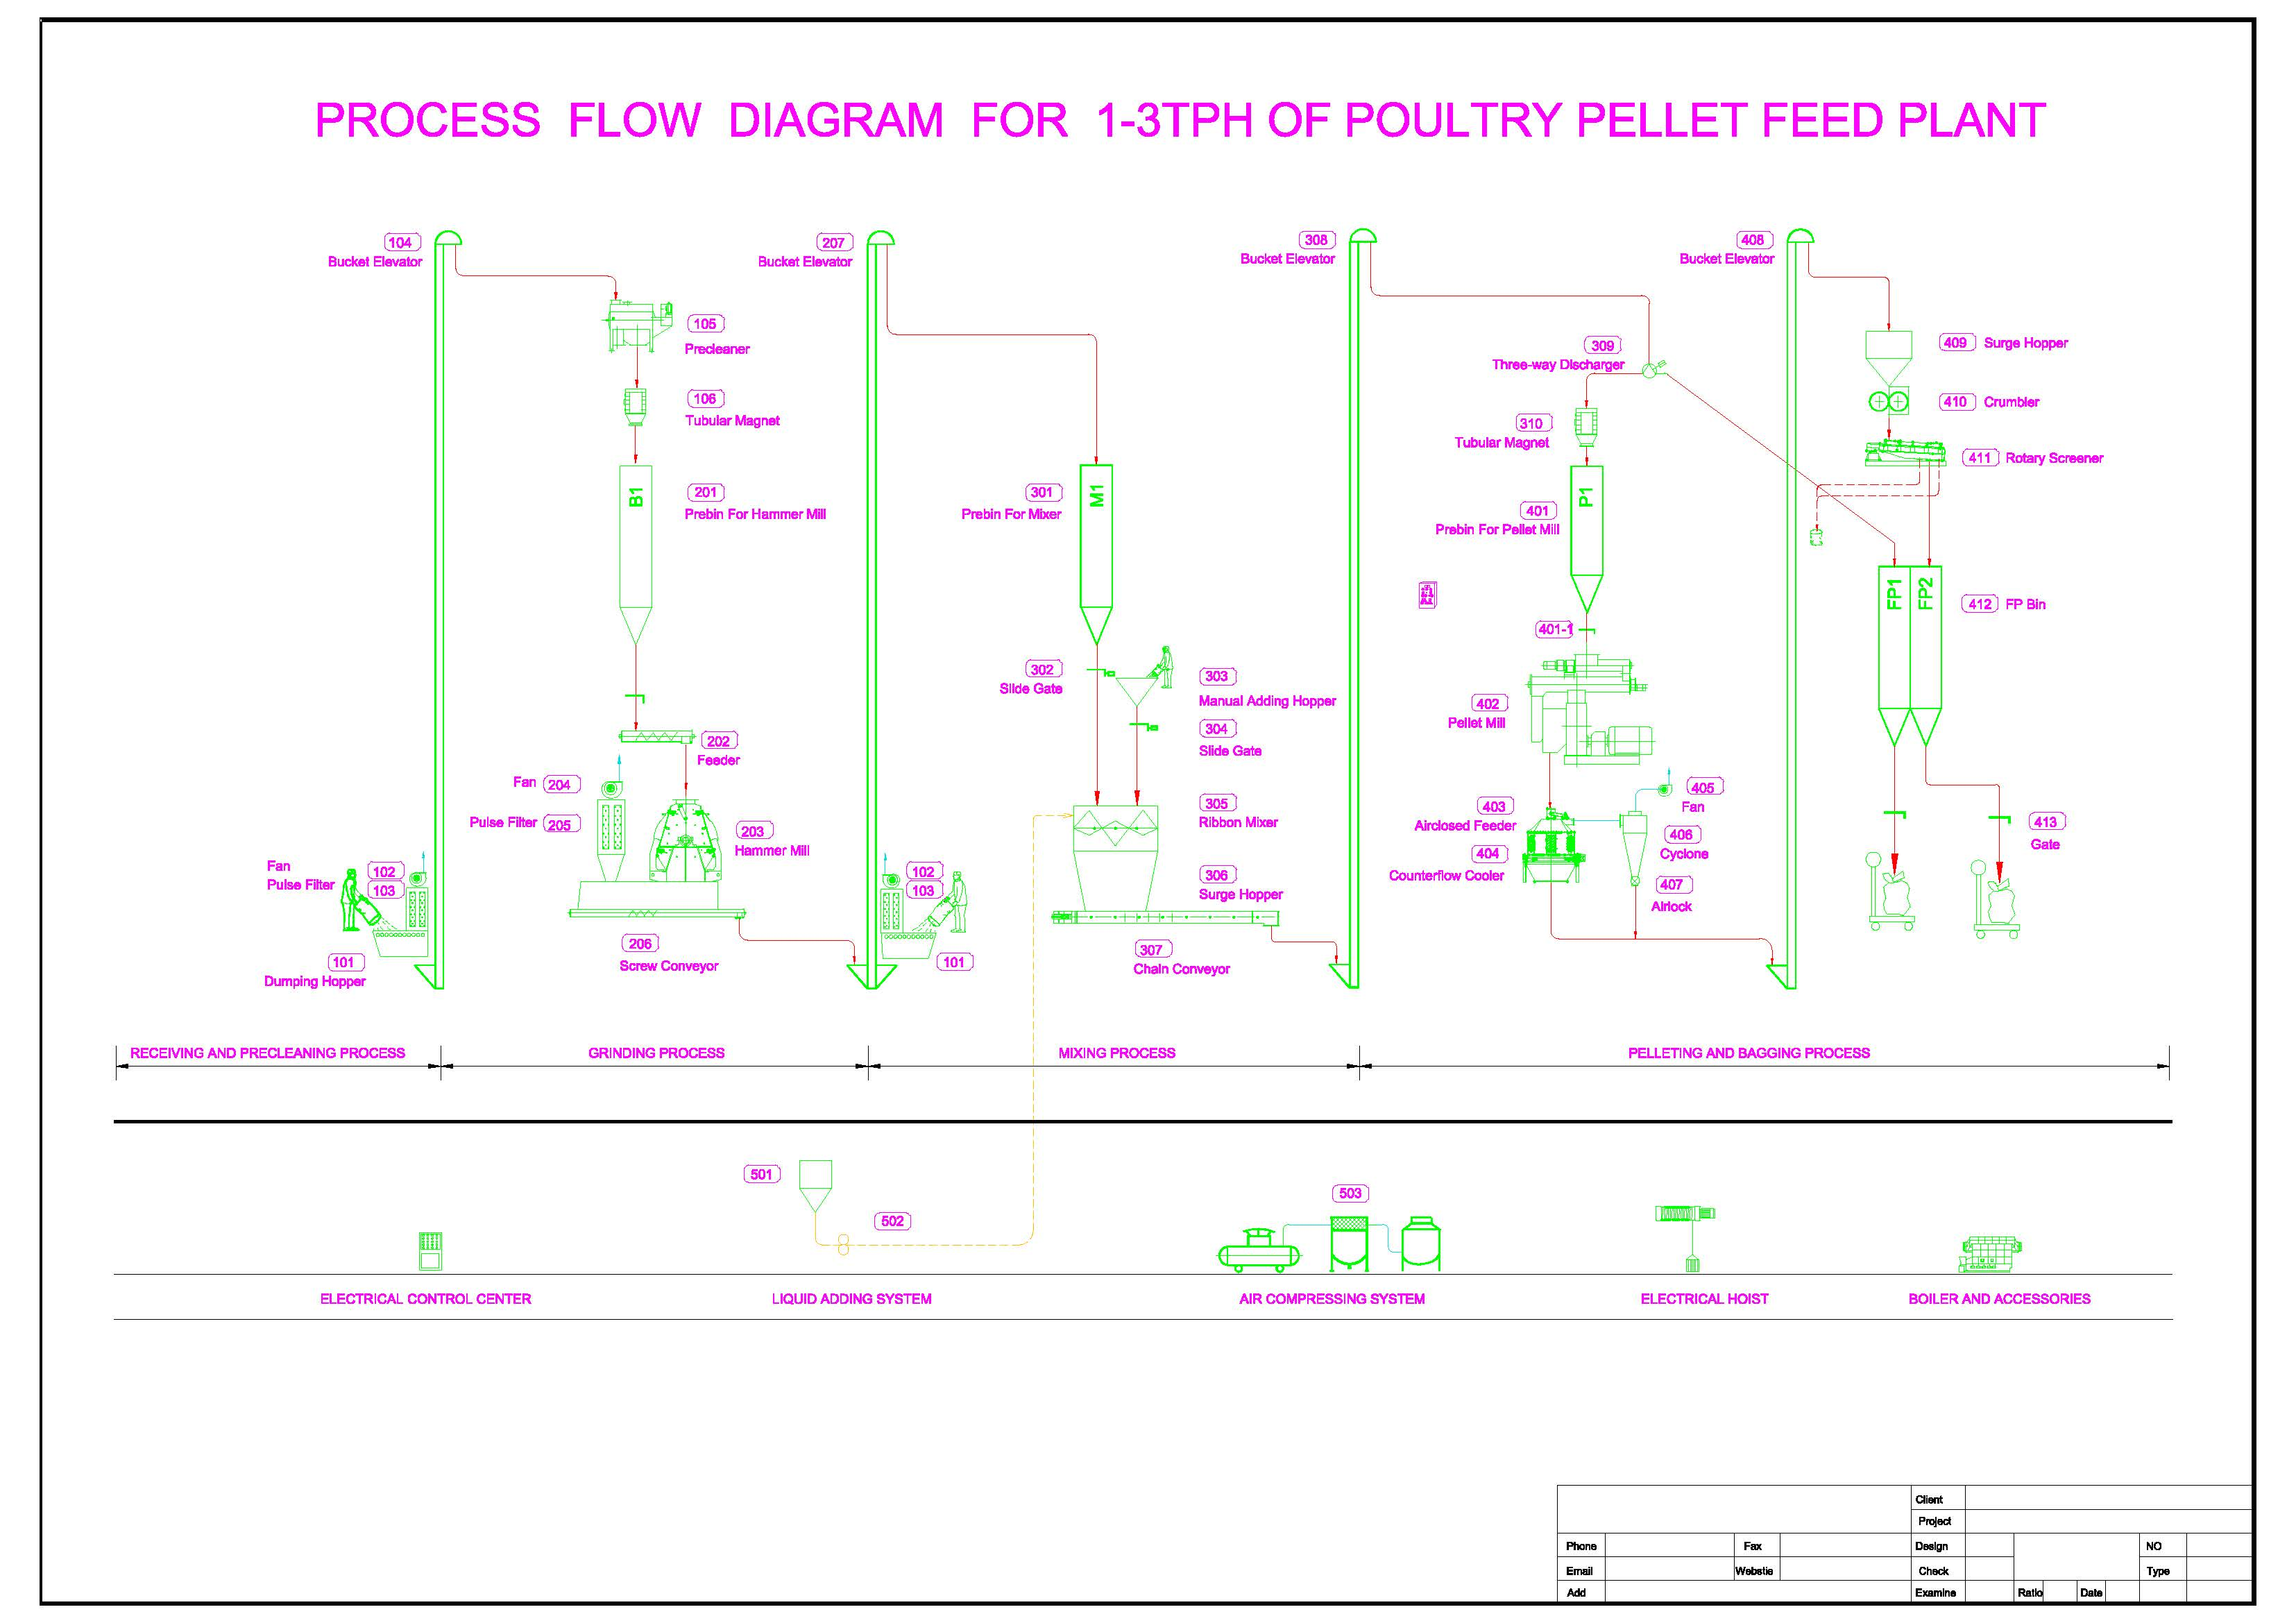 FLOW CHART FOR feed mill.jpg